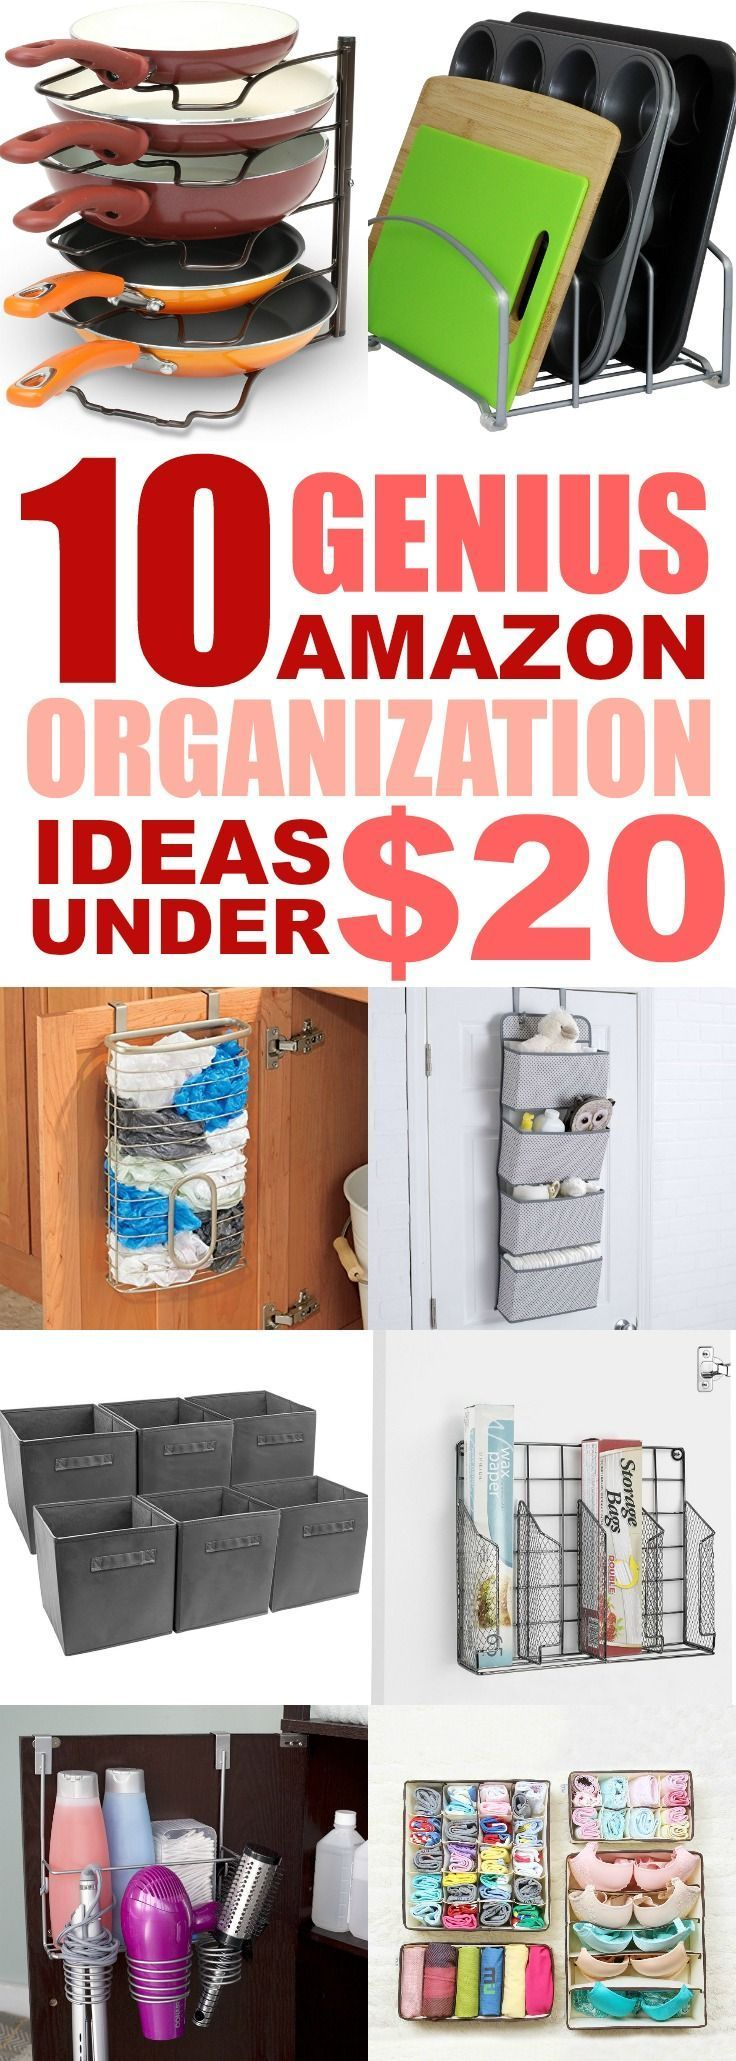 Best Home Organizing Ideas From Amazon On A Budget - Savvy Honey